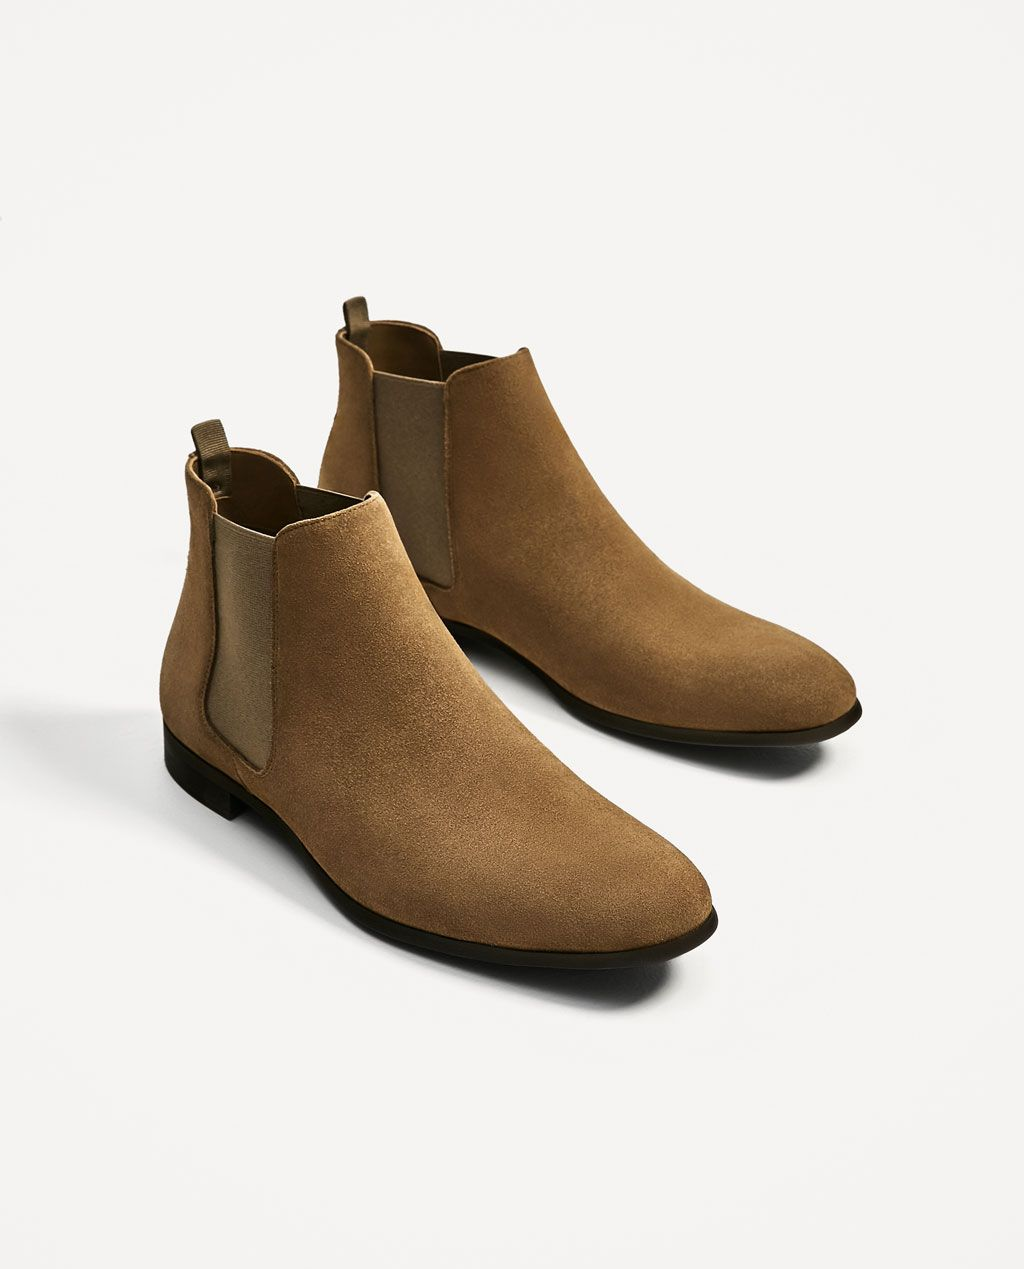 BEIGE LEATHER ANKLE BOOTS WITH ELASTICS-Boots and Ankle Boots-SHOES-MAN-